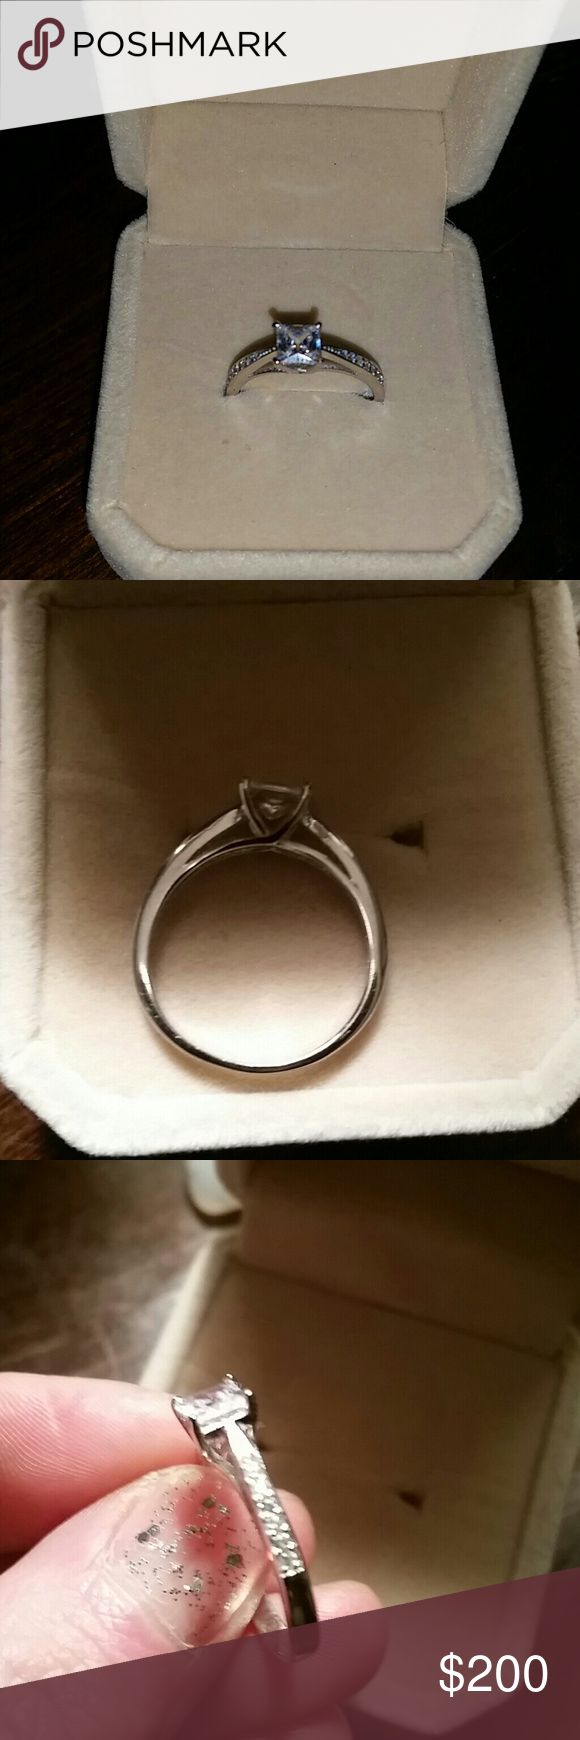 1ct Aneis De Diamante princess cut ring NEED GONE! I'm selling my engagement ring, no use for it. It is 1ct center stone with 6 pave' diamonds on each side. It is a Sona simulated diamond. Ladies, it's GORGEOUS. Super sparkly and honestly prettier than any of the diamond jewelry I have. 14k white gold Plated sterling silver. 925 hallmark stamp with the word Love engraved in it.  Size 7! Such a great deal, seriously this is THE classic solitaire, engagement ring! Comes in its velvet box…